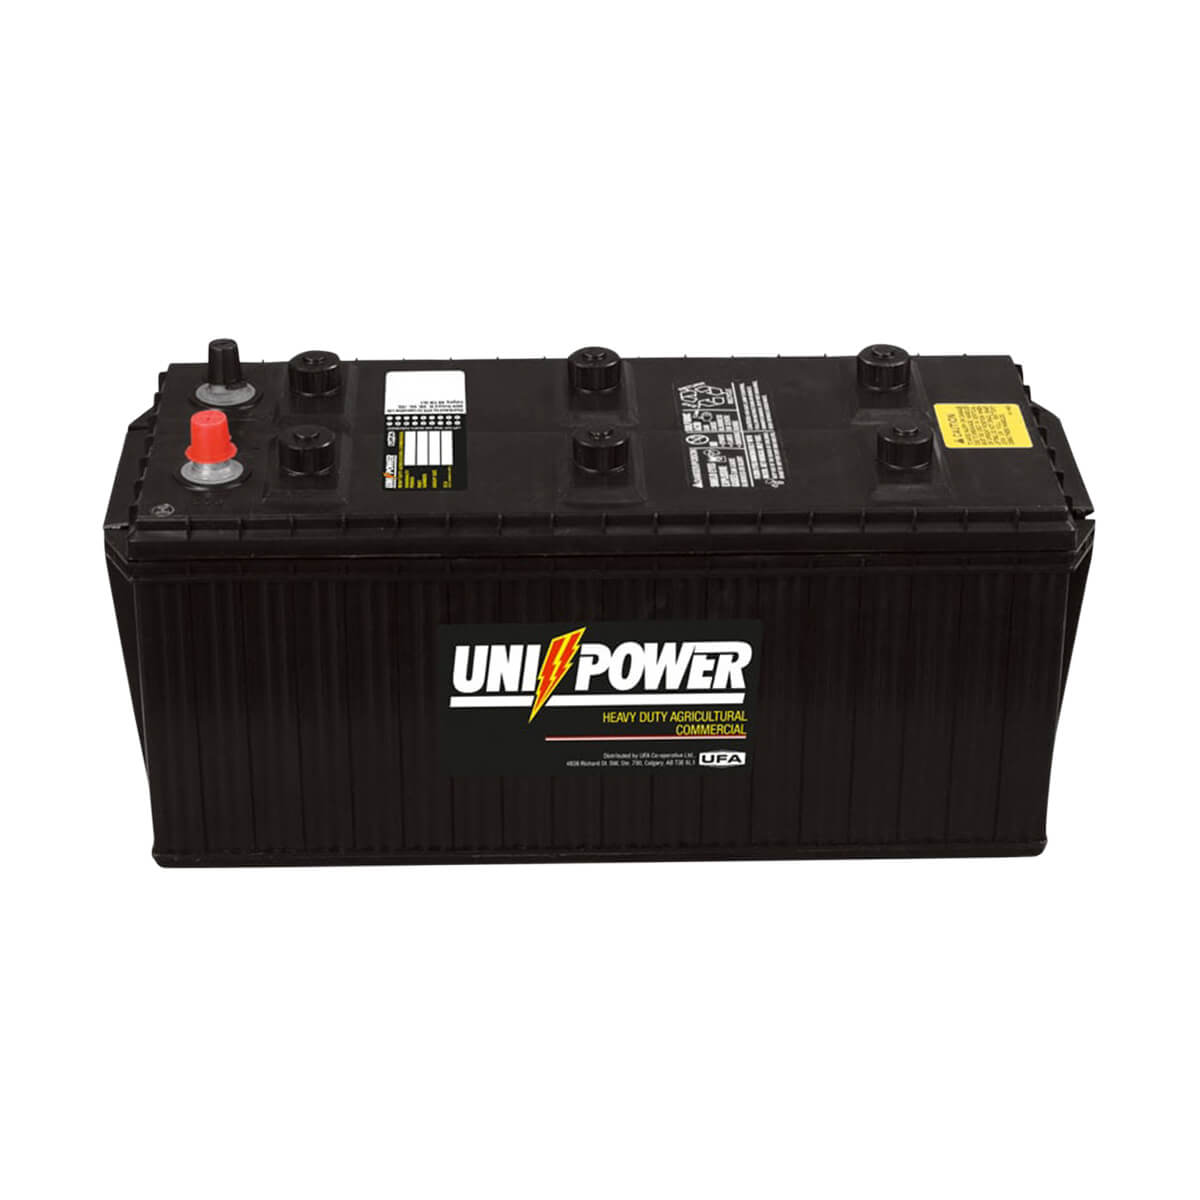 Uni-Power Heavy Duty 12 Volt Battery - 7-4DP